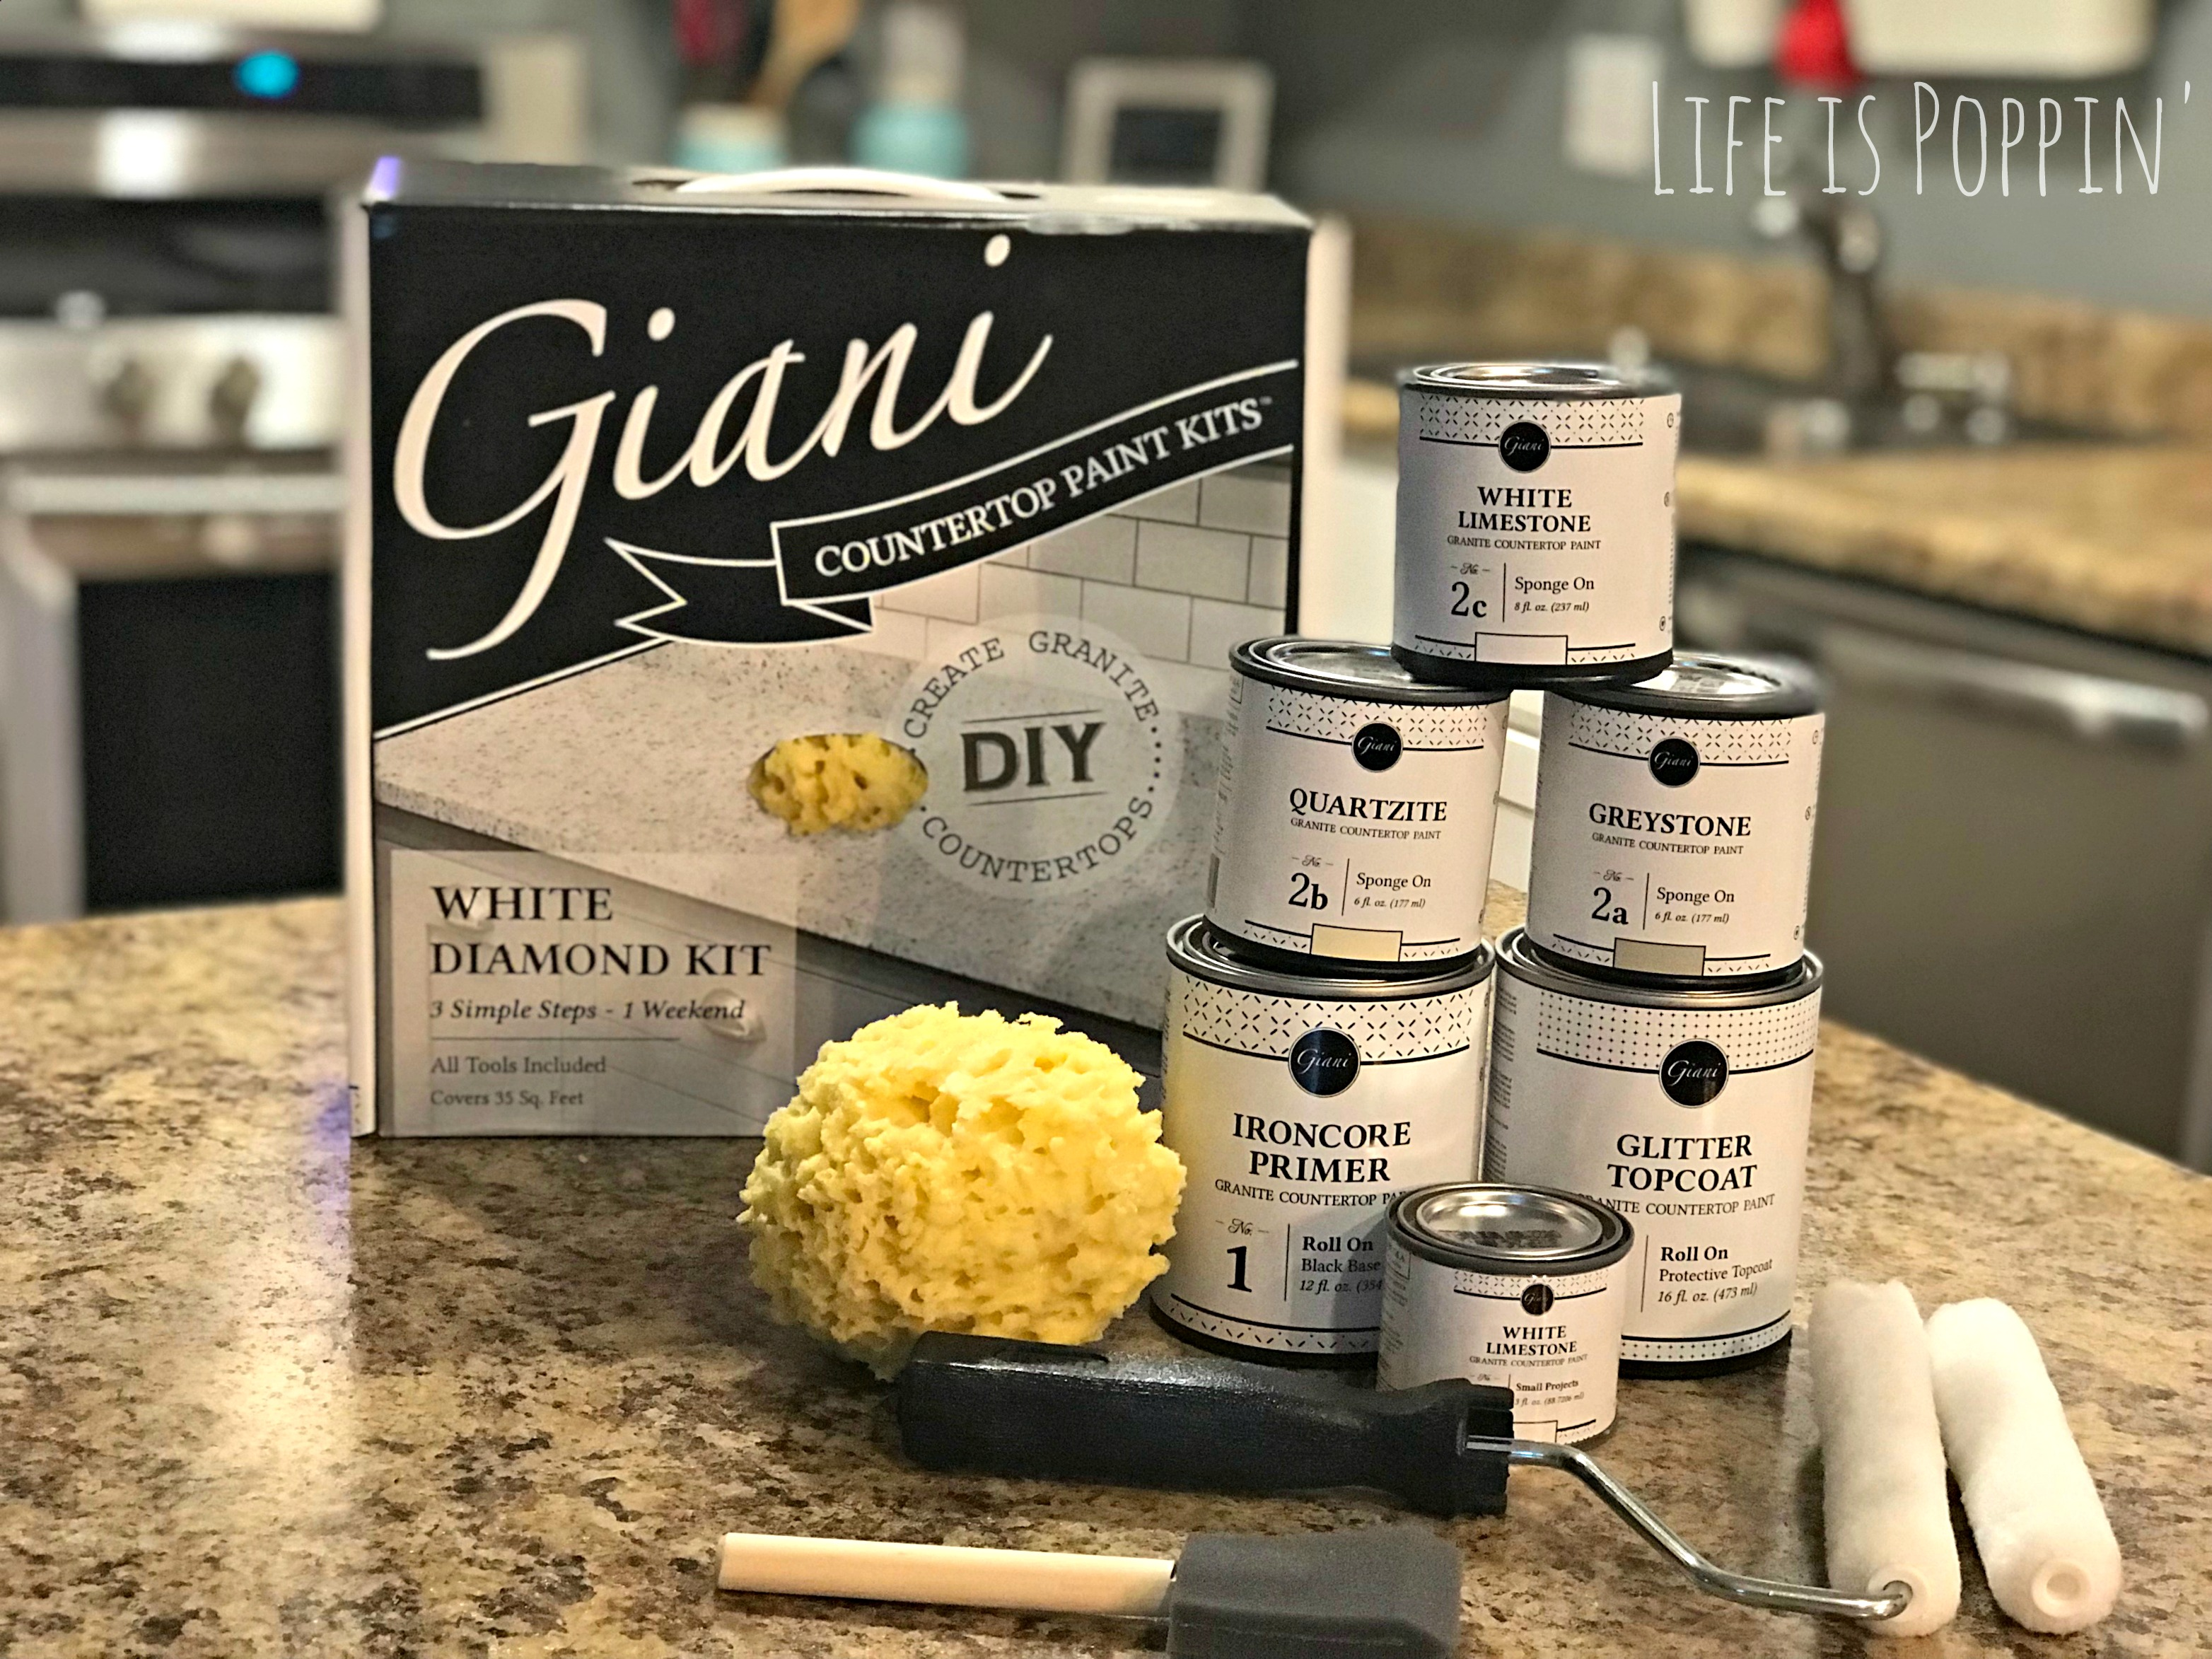 Giani-Countertop-paint-kits